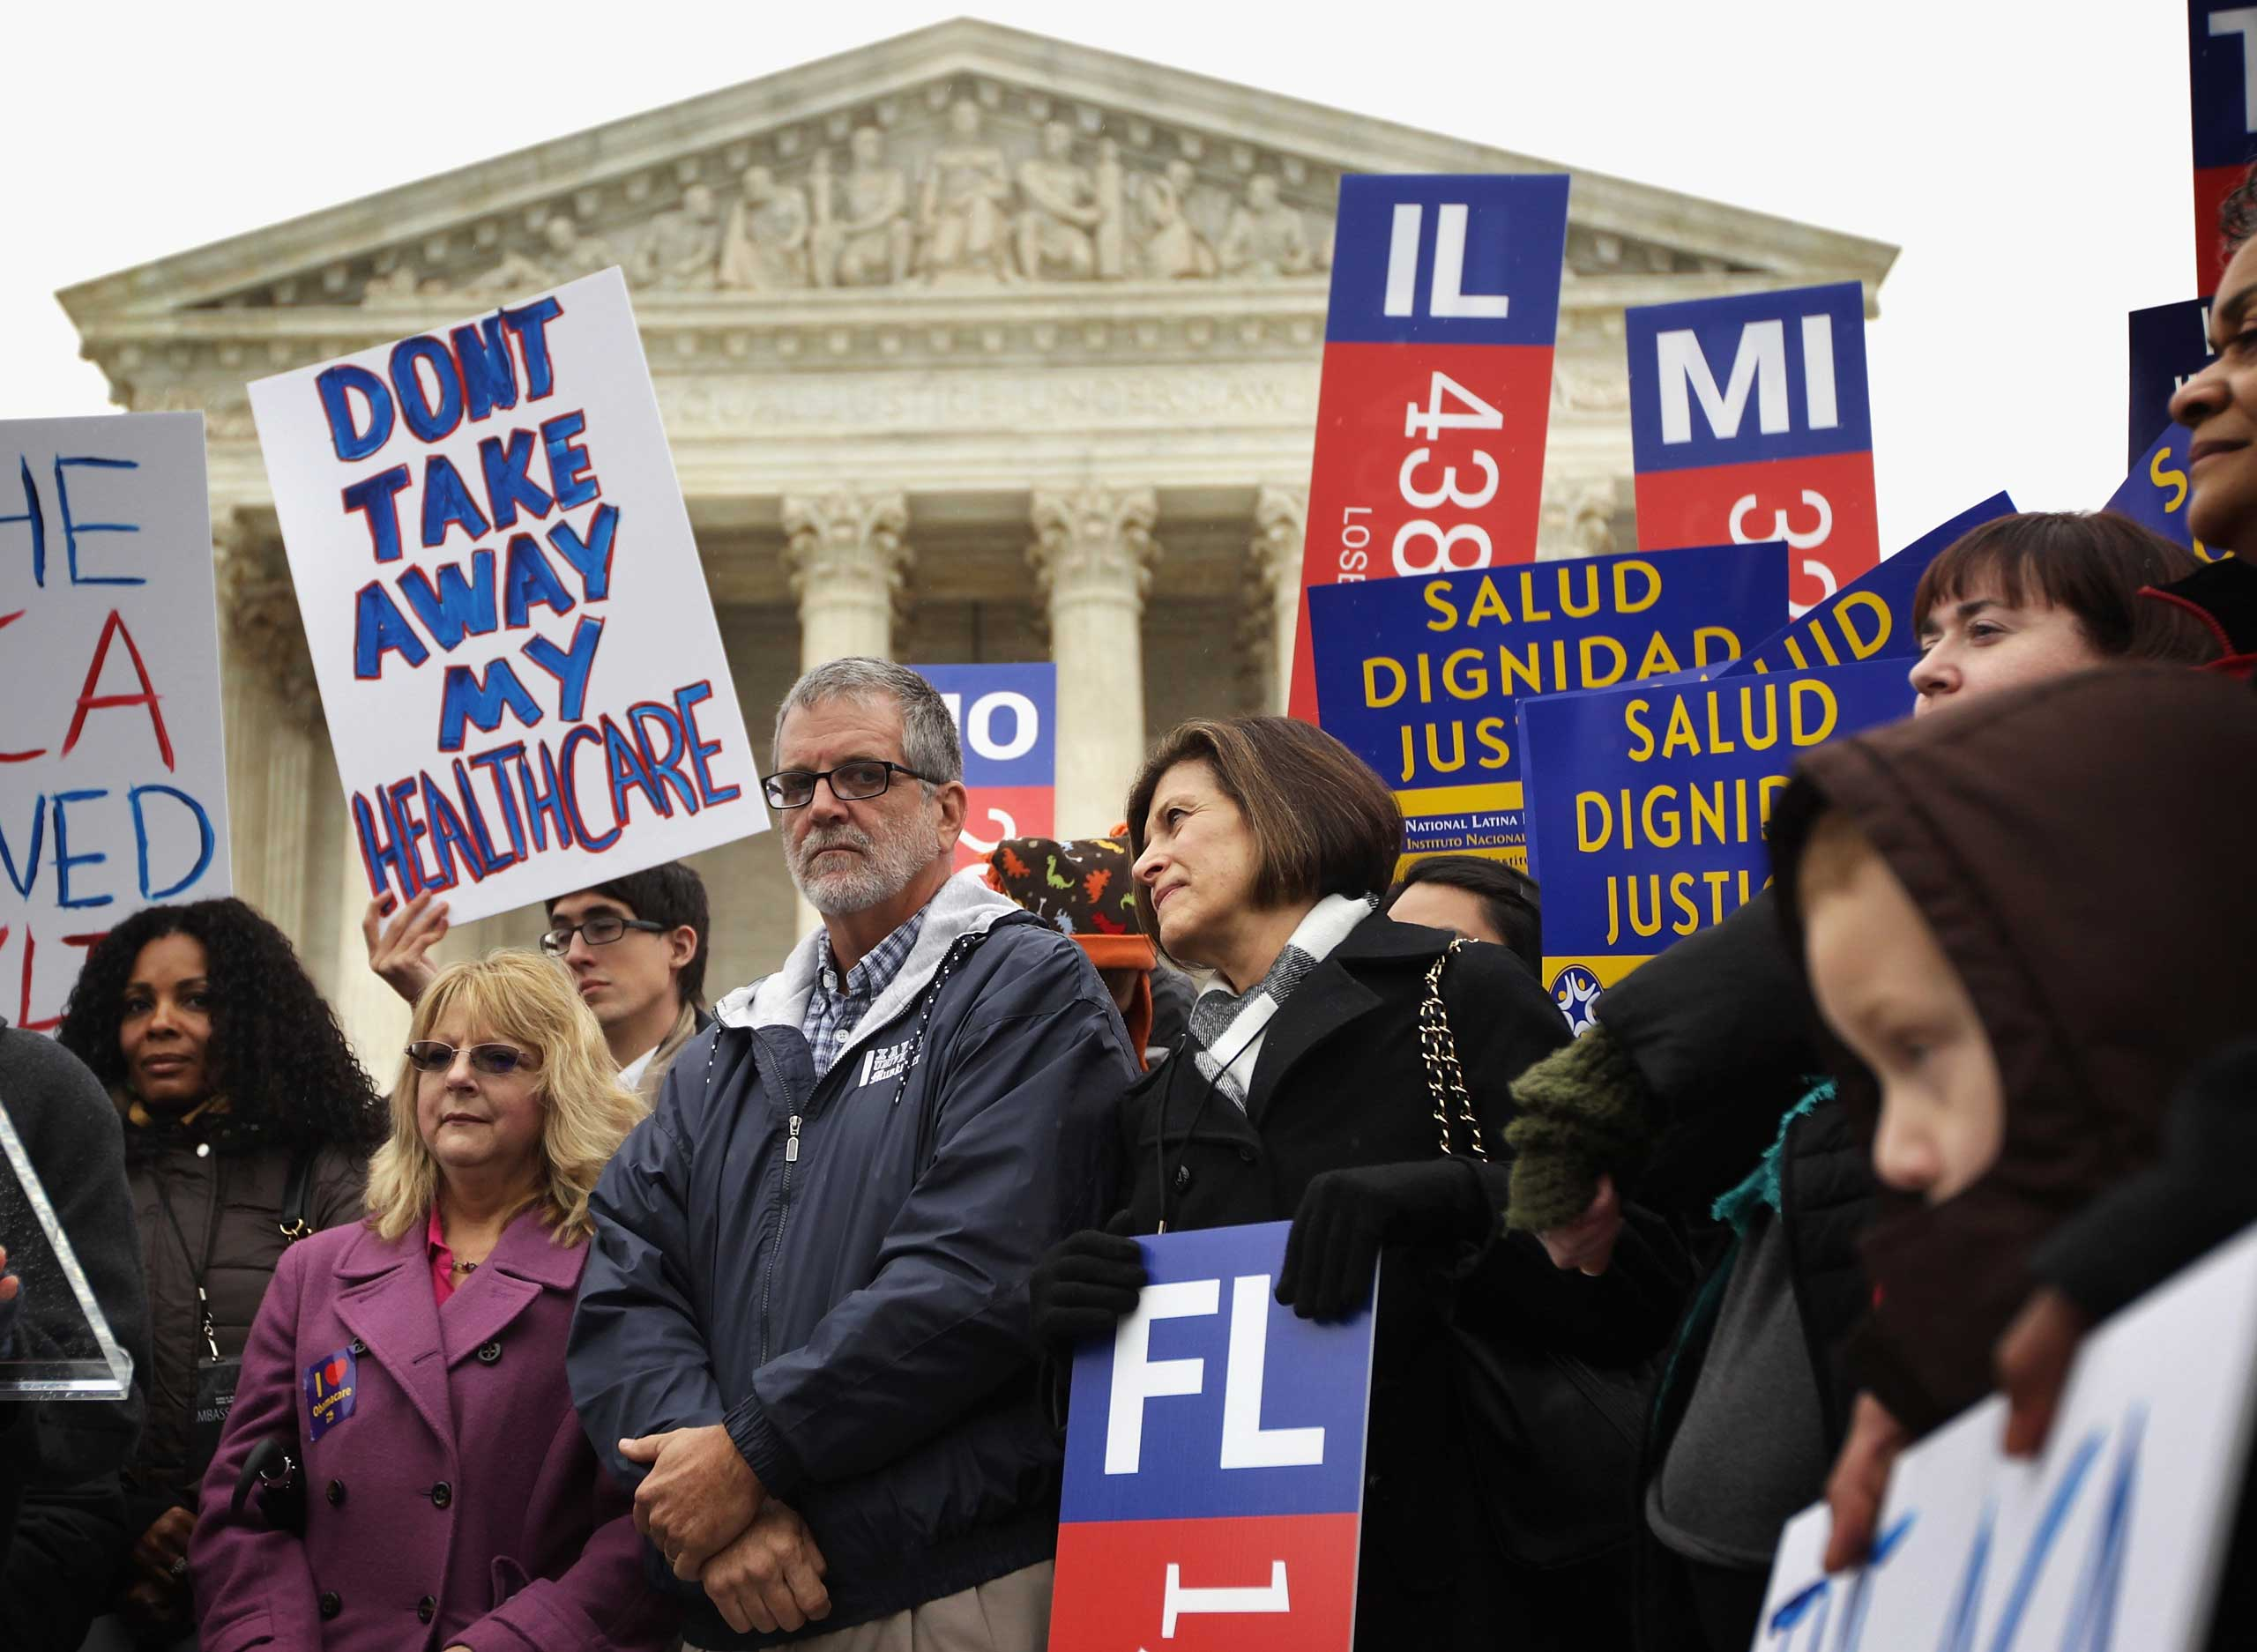 Supporters of the Affordable Care Act gather in front of the U.S Supreme Court during a rally in Washington on March 4, 2015.